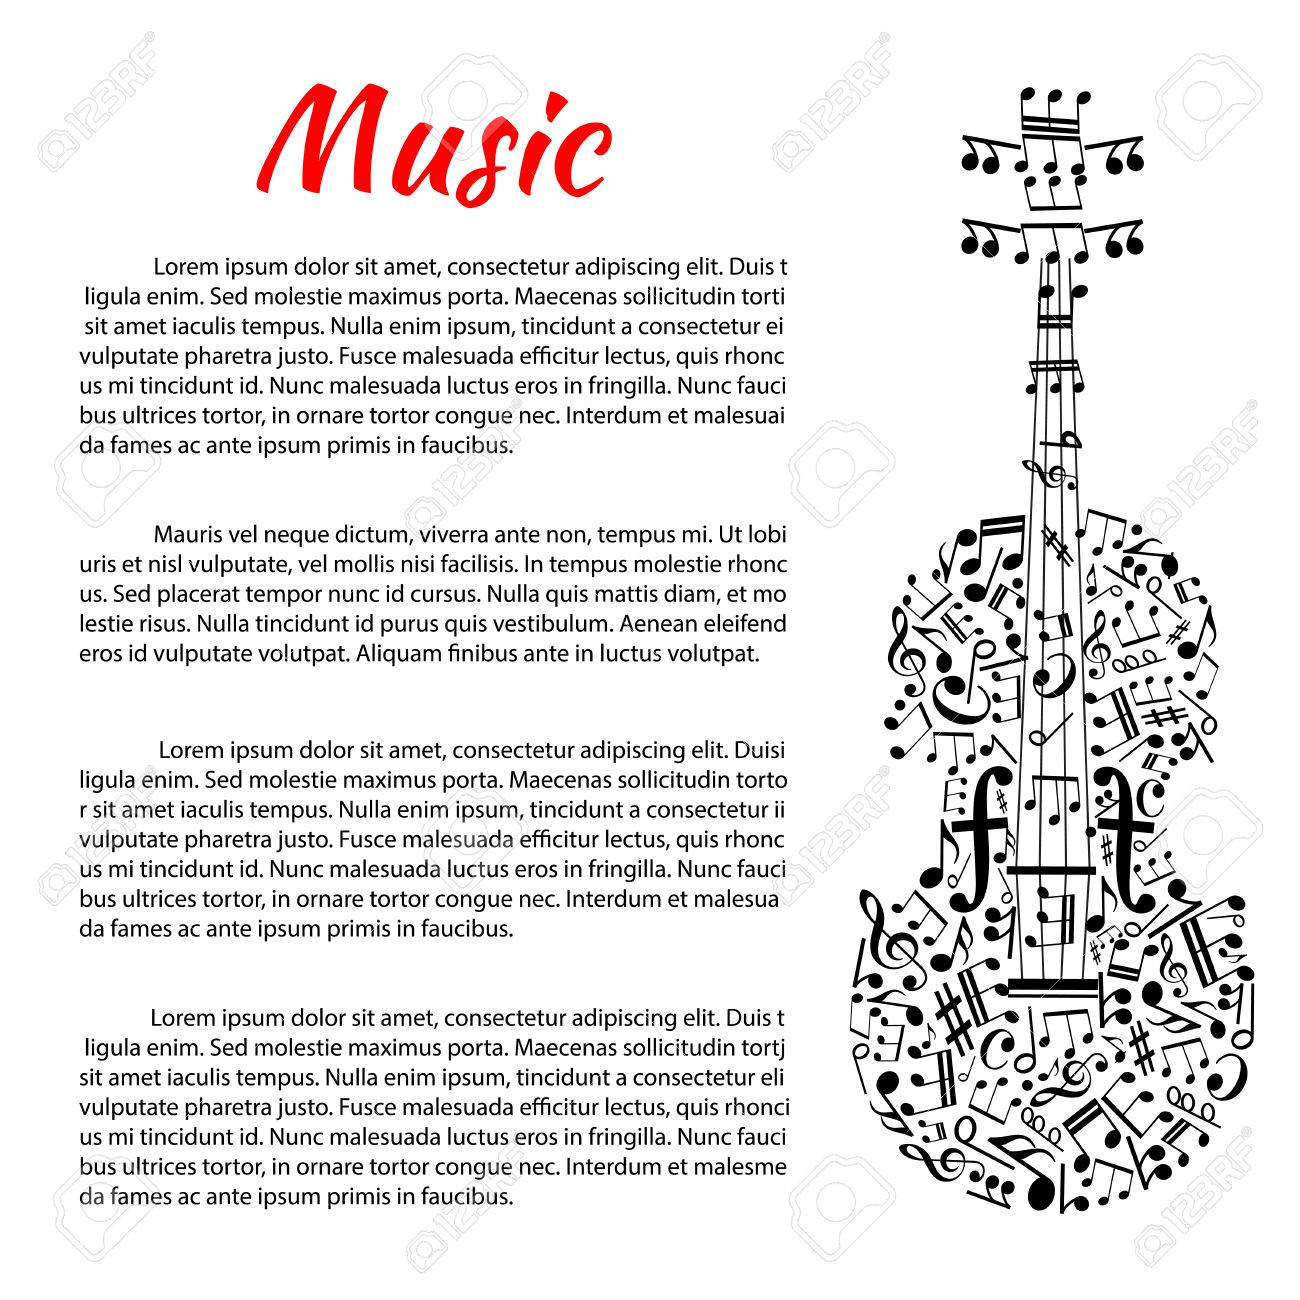 Classic Music Poster With Violin Silhouette Created Of Musical